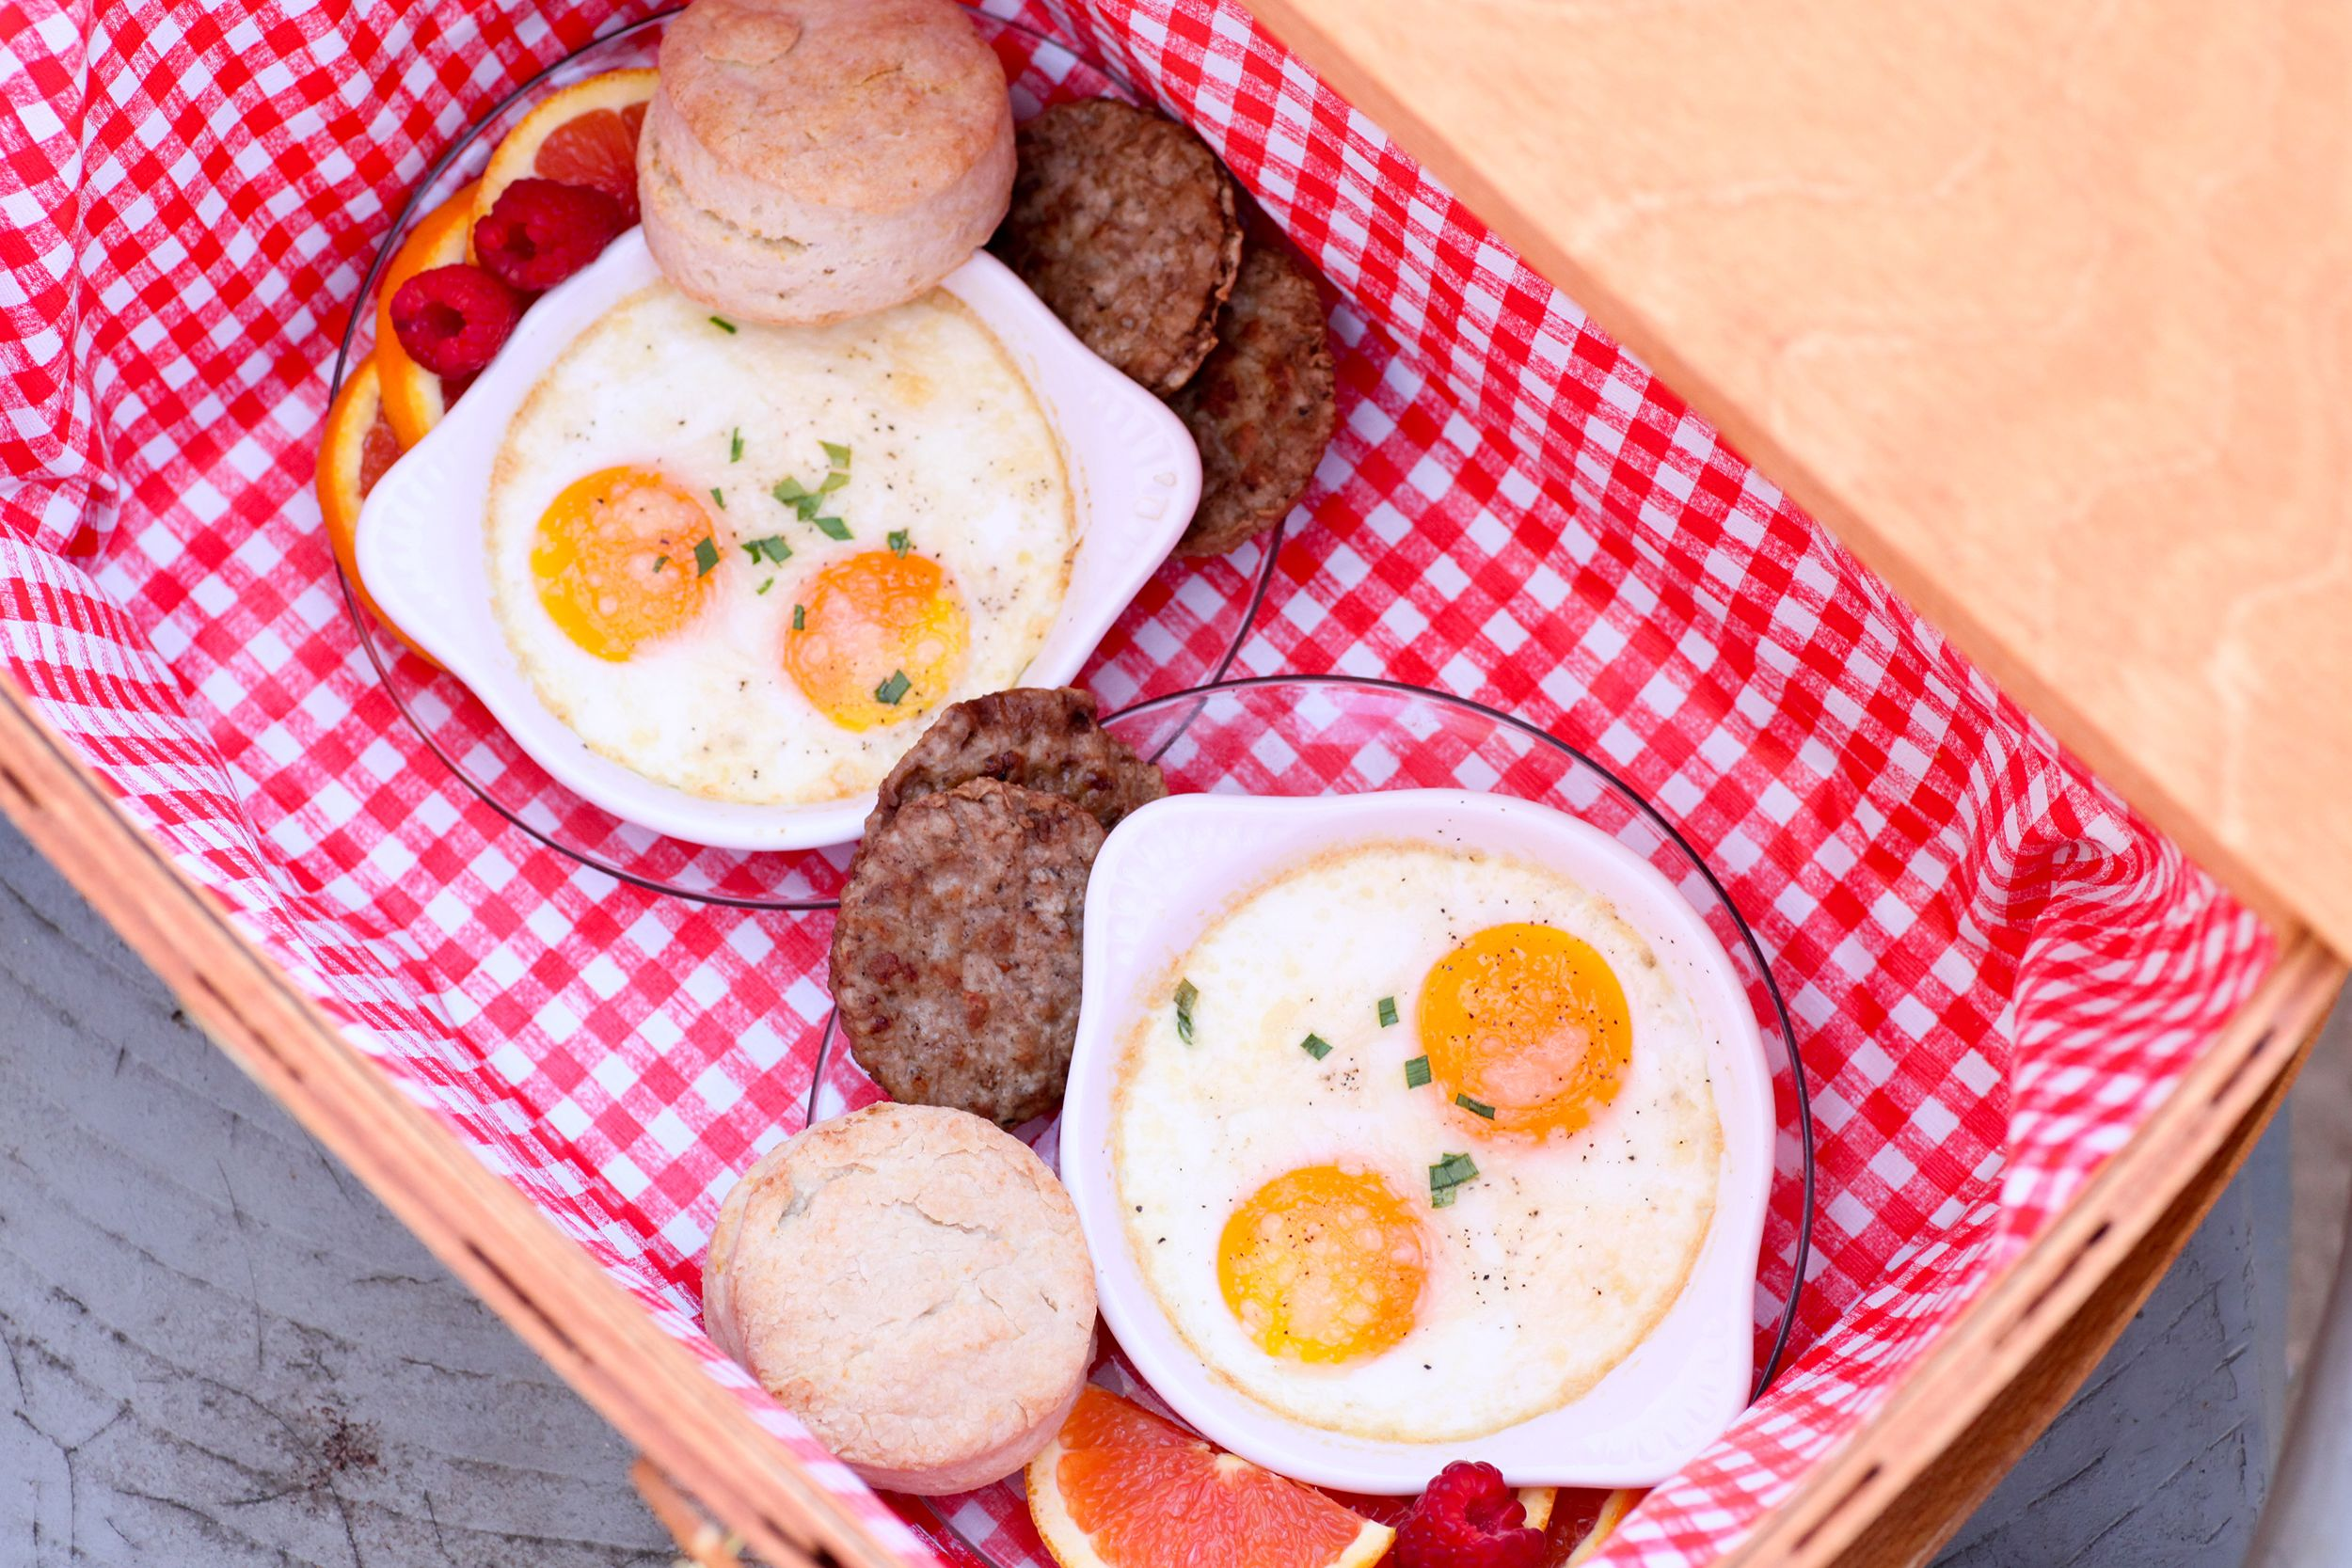 Main Photo Weekly Breakfast Menu- Sheered Eggs in Basket.jpg